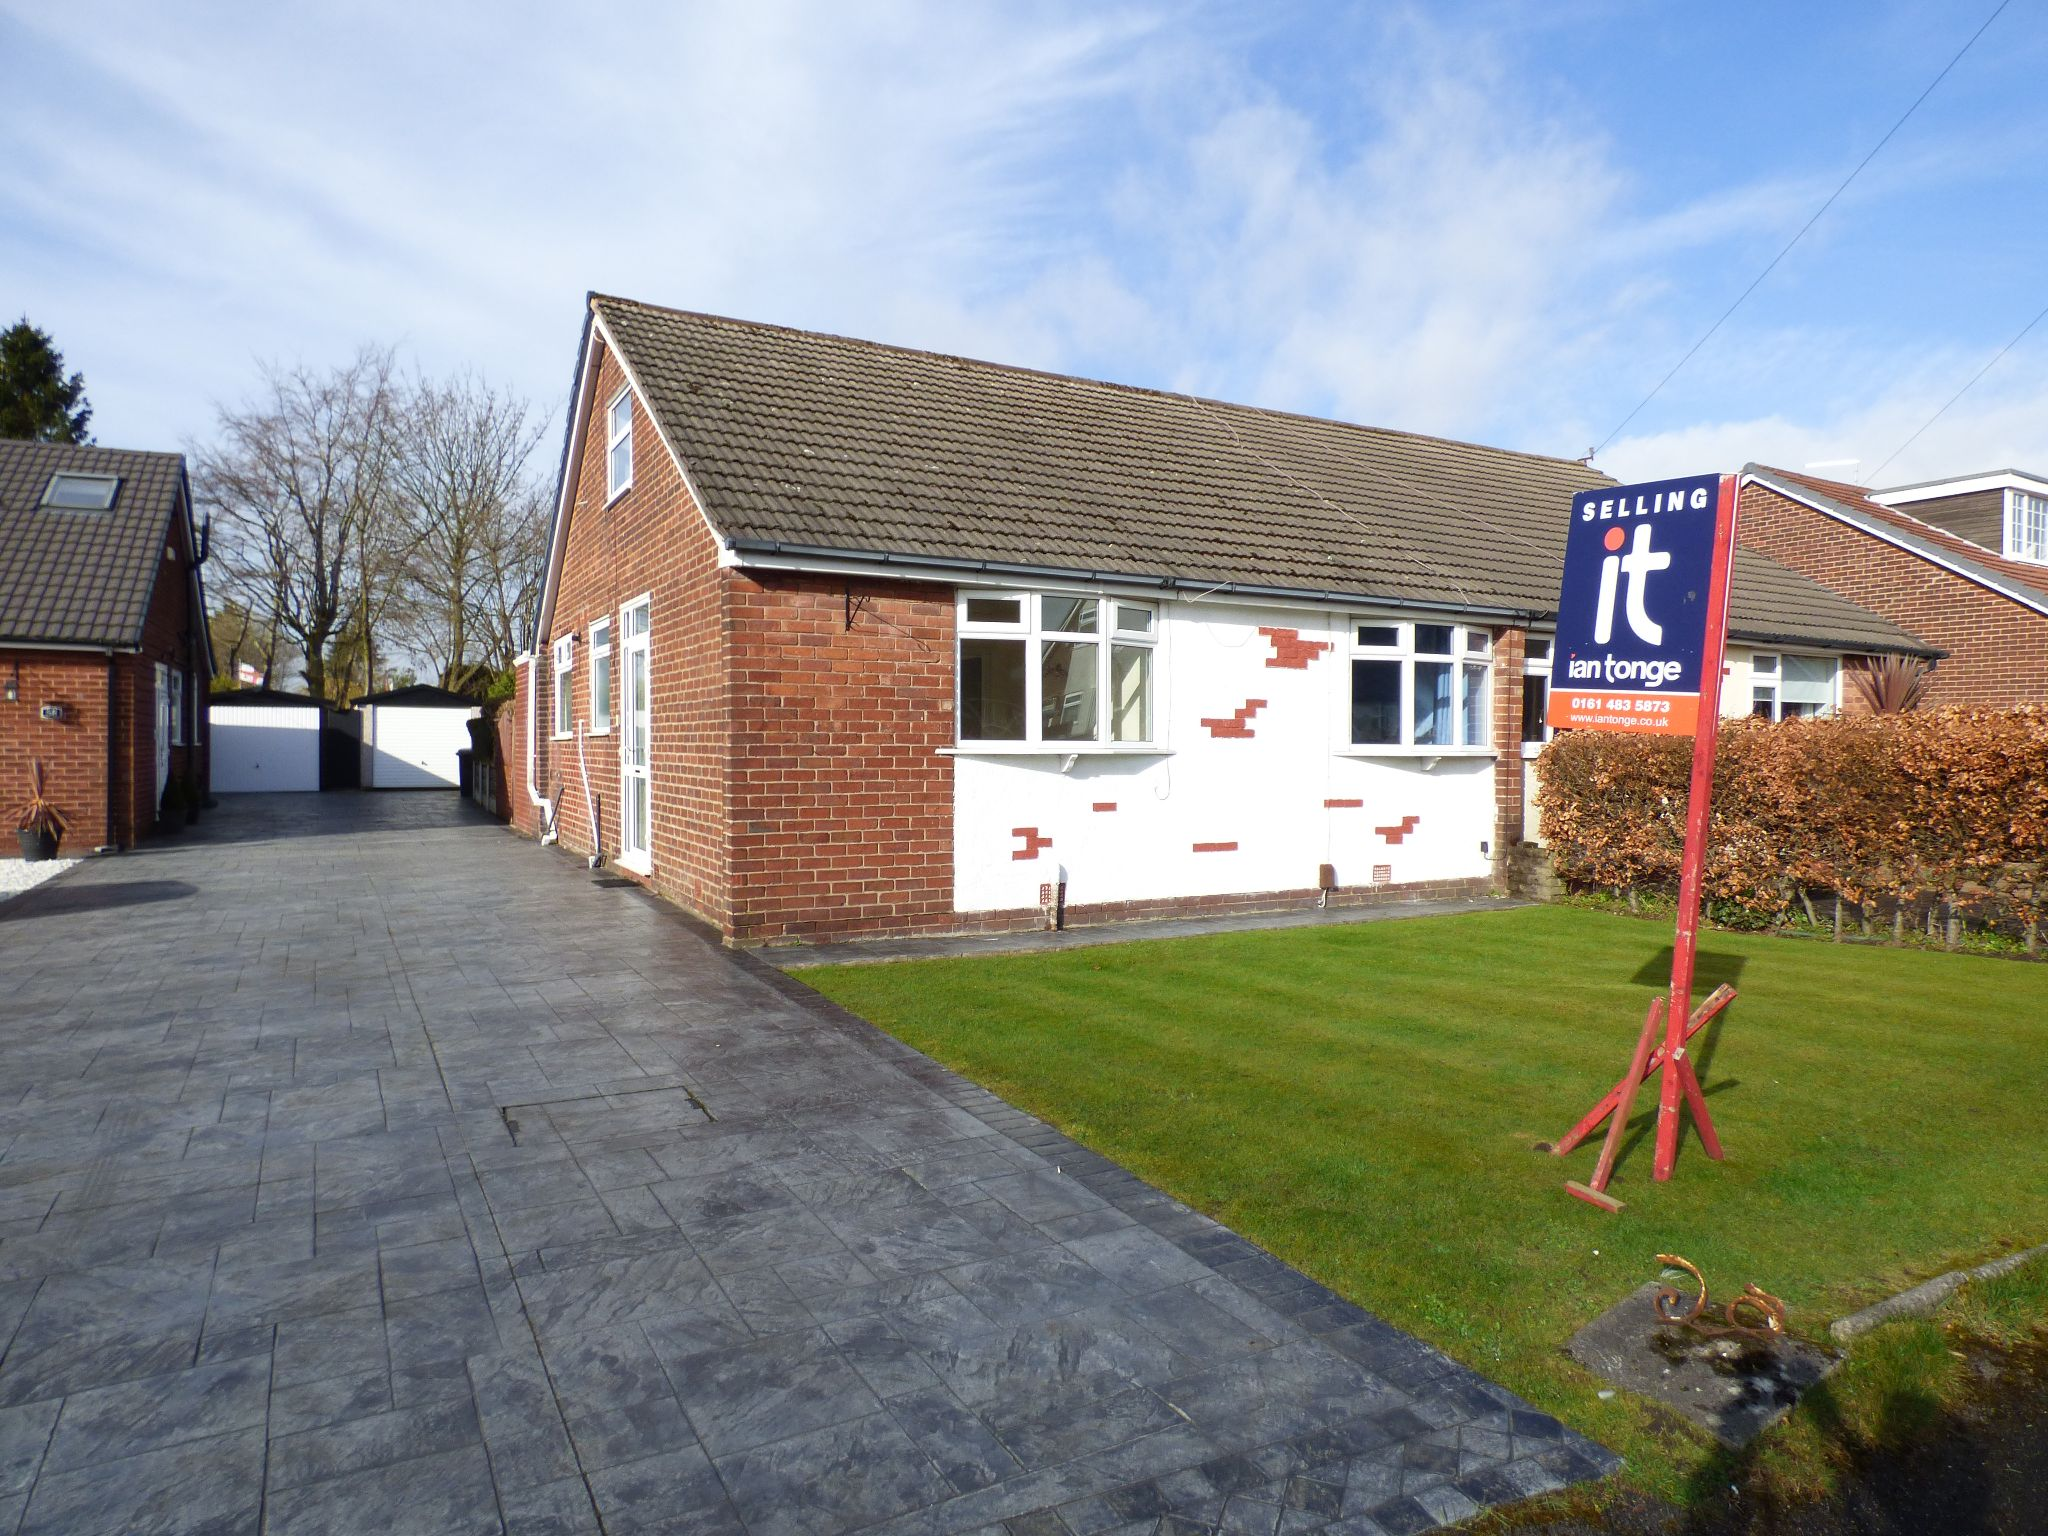 3 Bedroom Semi-detached Bungalow For Sale - Photograph 1